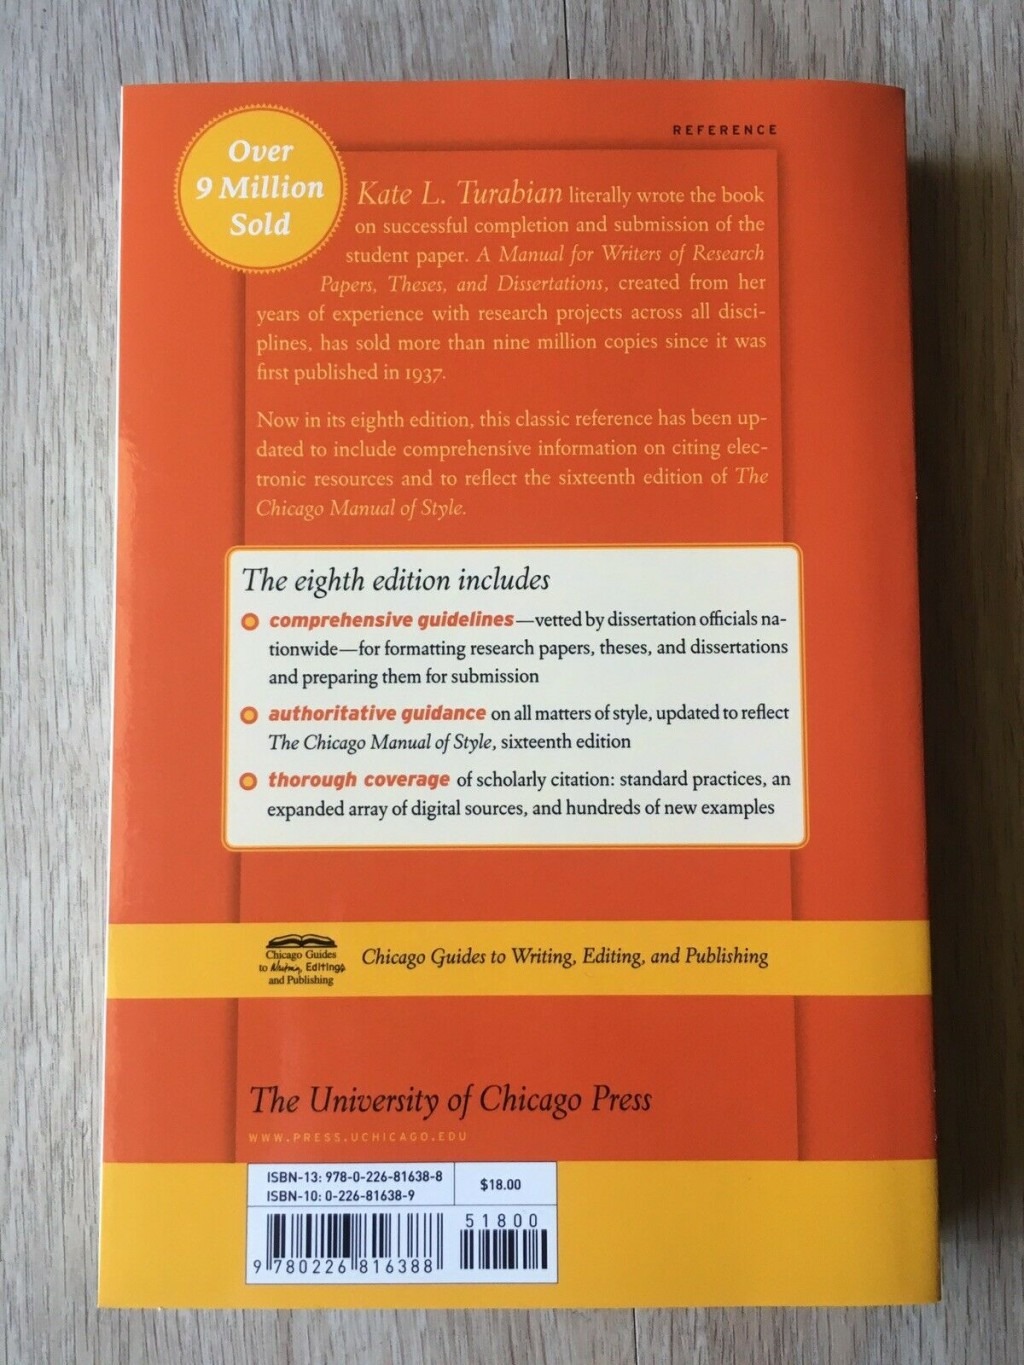 011 Research Paper Manual For Writers Of Papers Theses And Dissertations S Sensational A 8th Edition Pdf Eighth Large